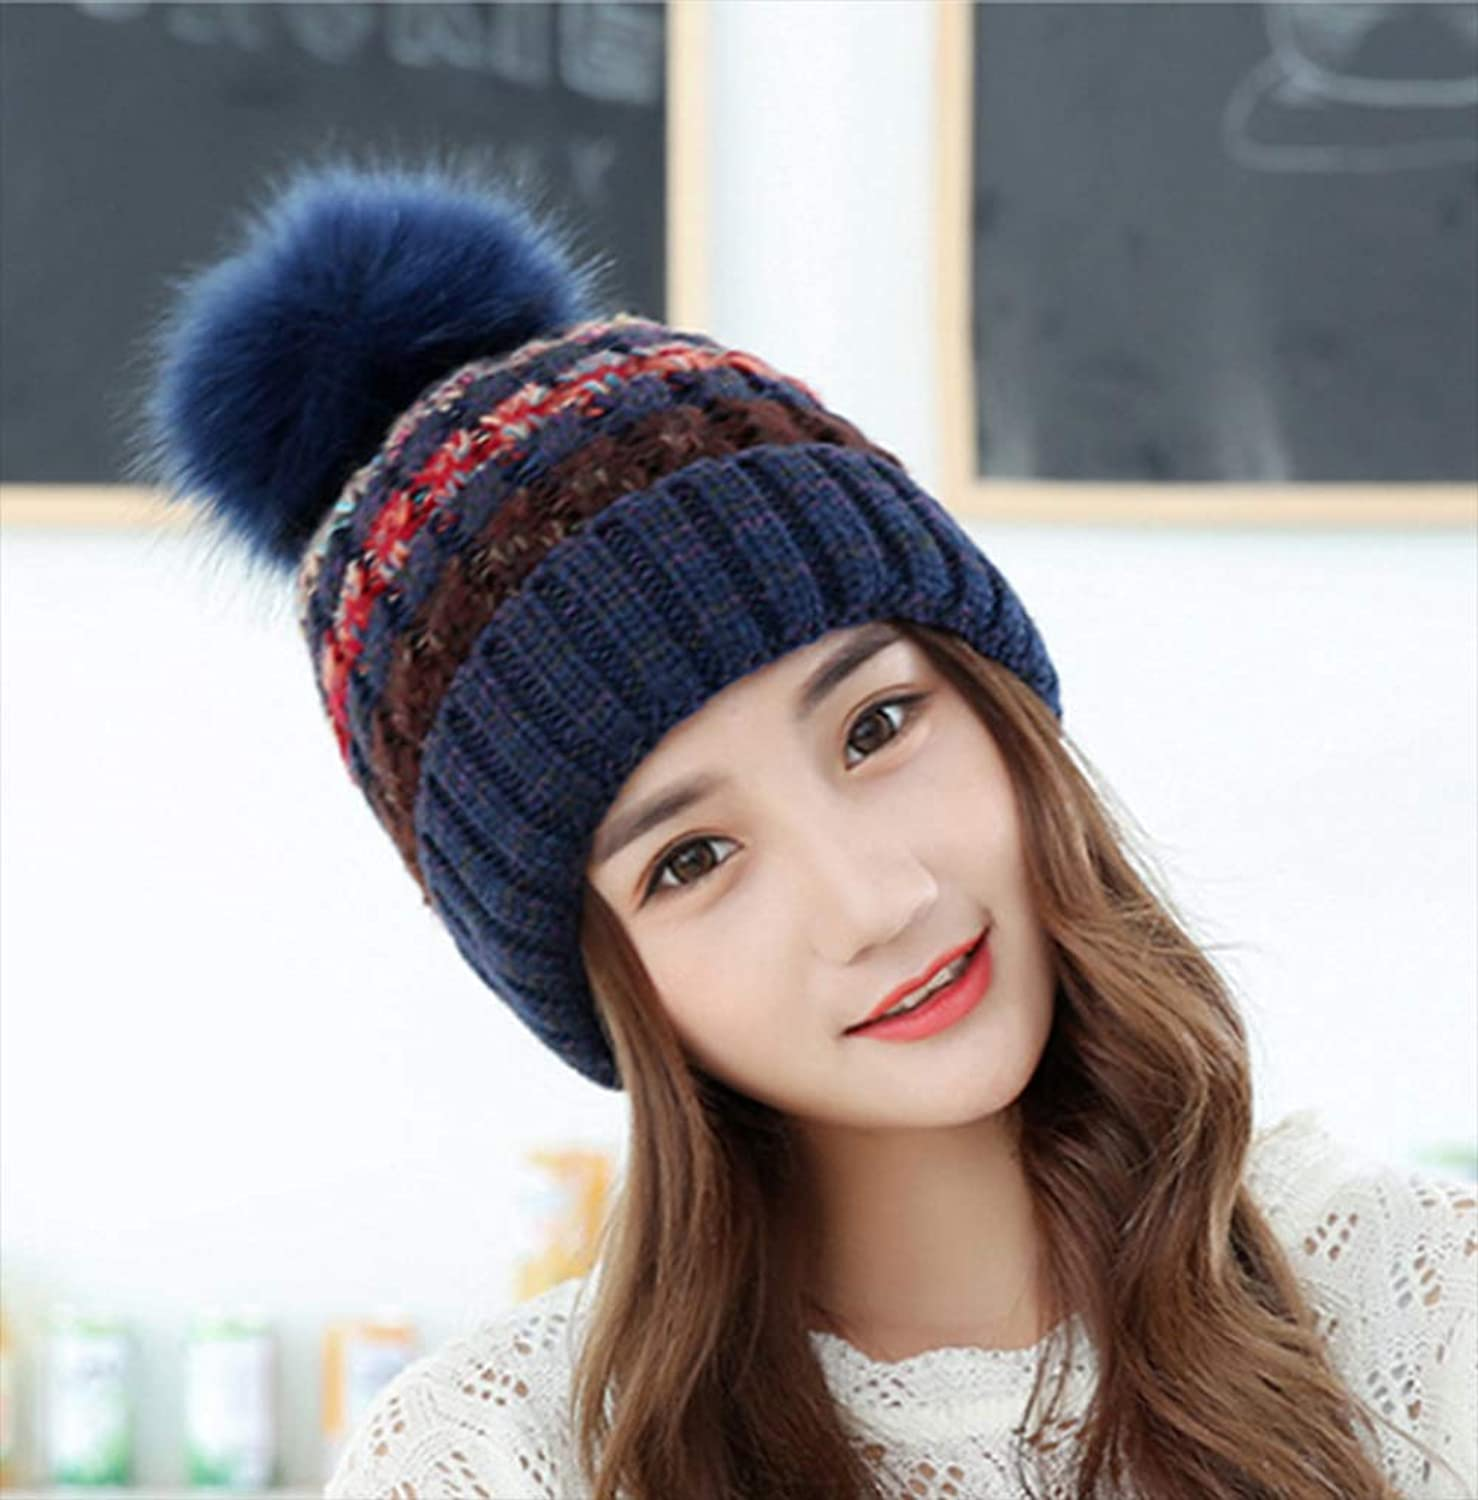 Wool Hat Winter Thickening Outdoor Clip color Hair Ball Cap Ladies Month Warm Plush Earmuffs Knit Hat,A